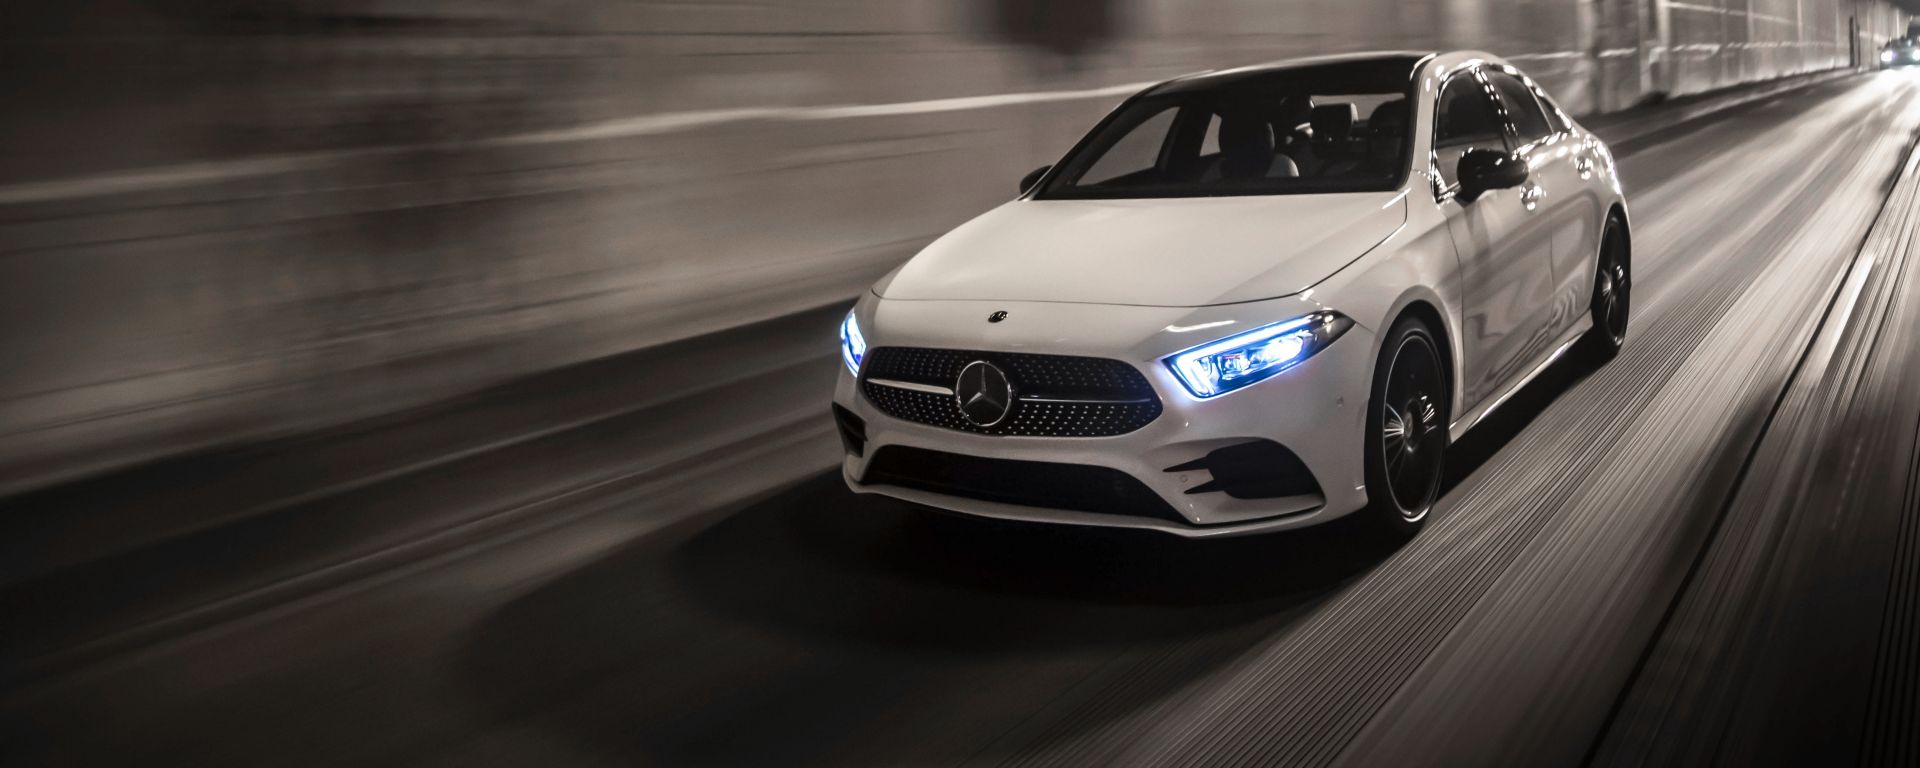 Mercedes Classe A Sedan: movimento